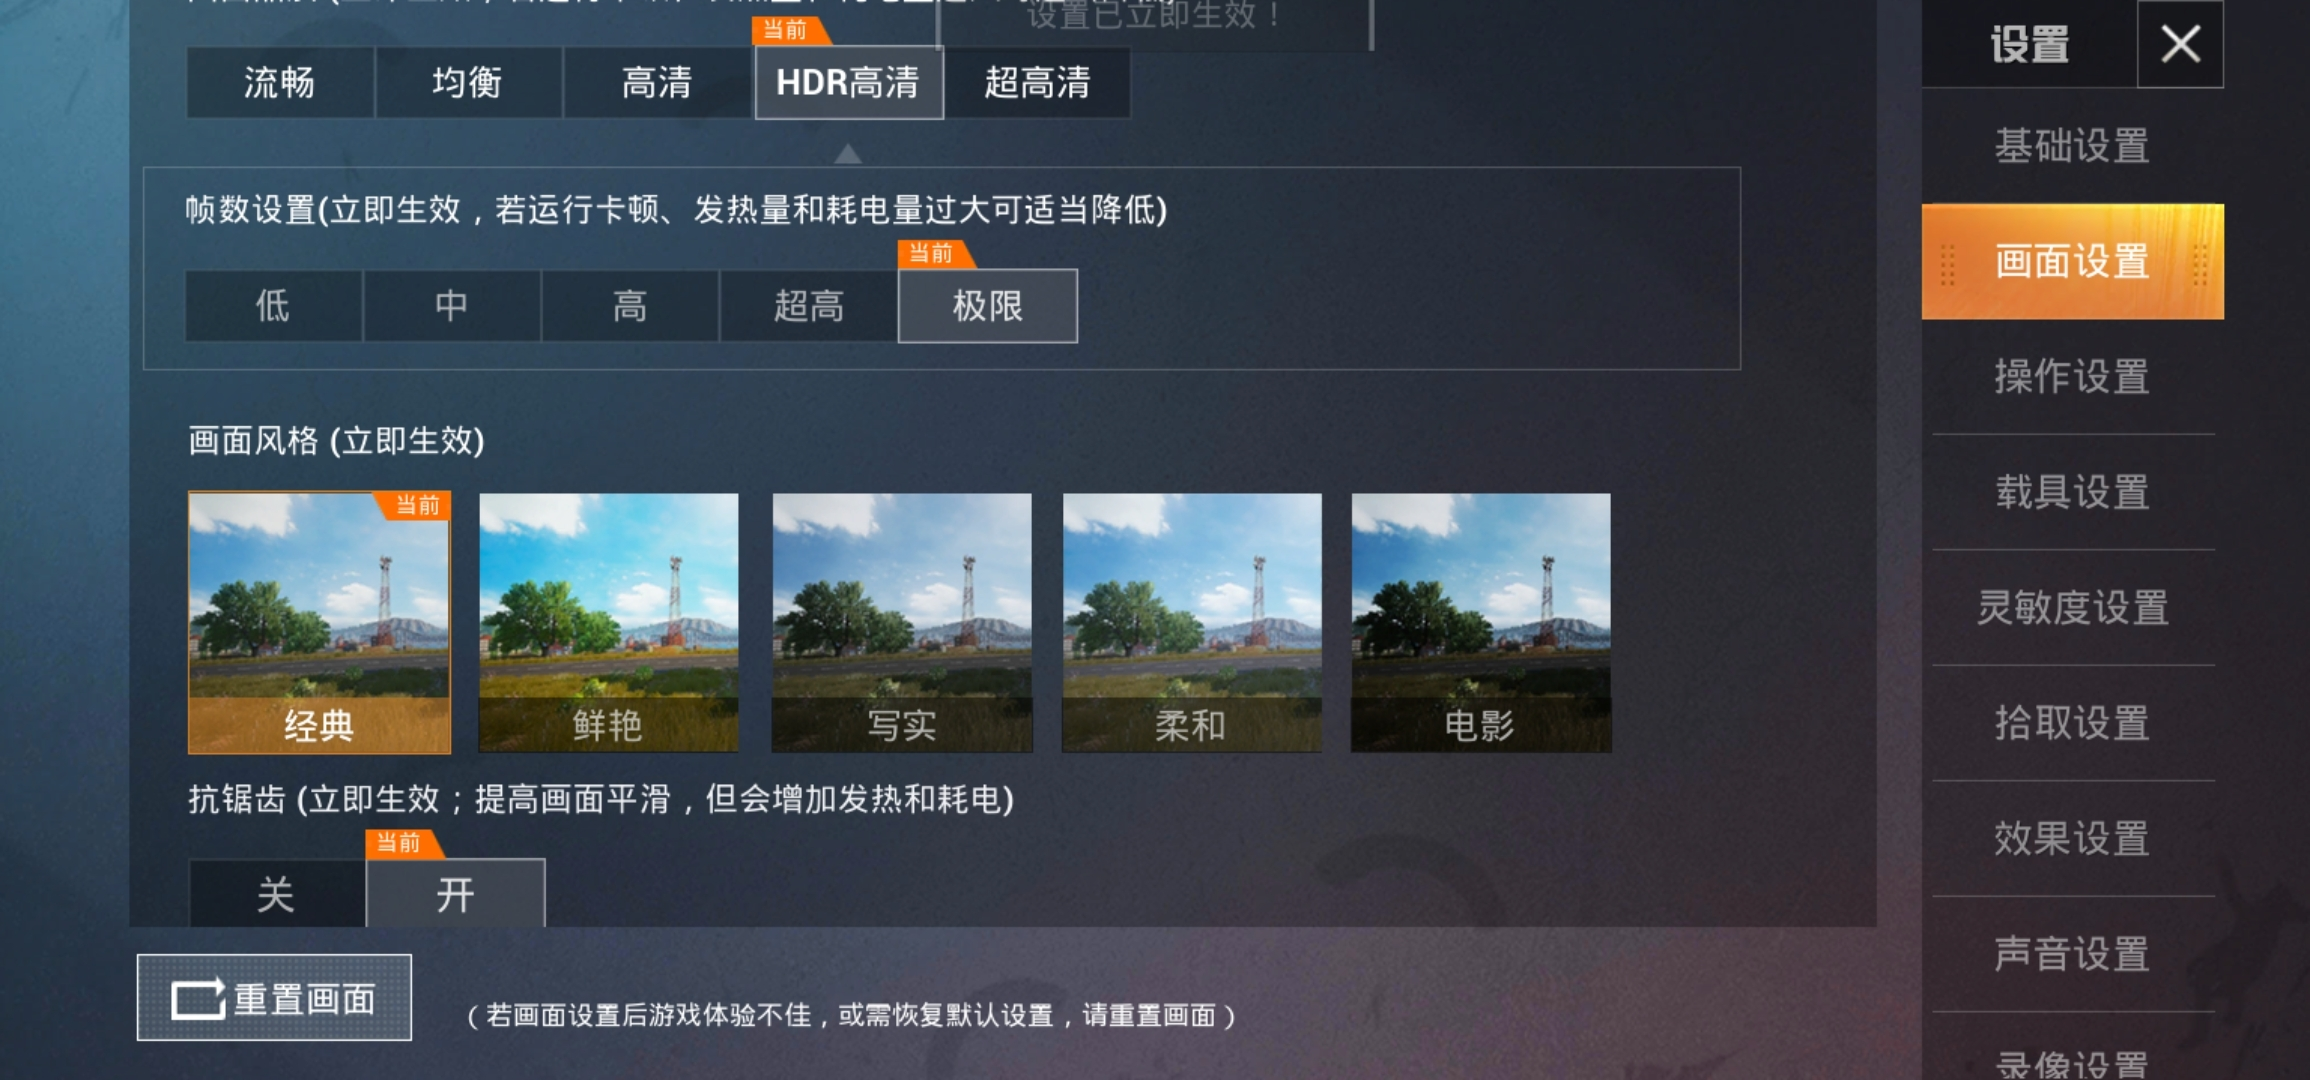 Screenshot_20200518_153842_com.tencent.tmgp.pubgmhd.jpg